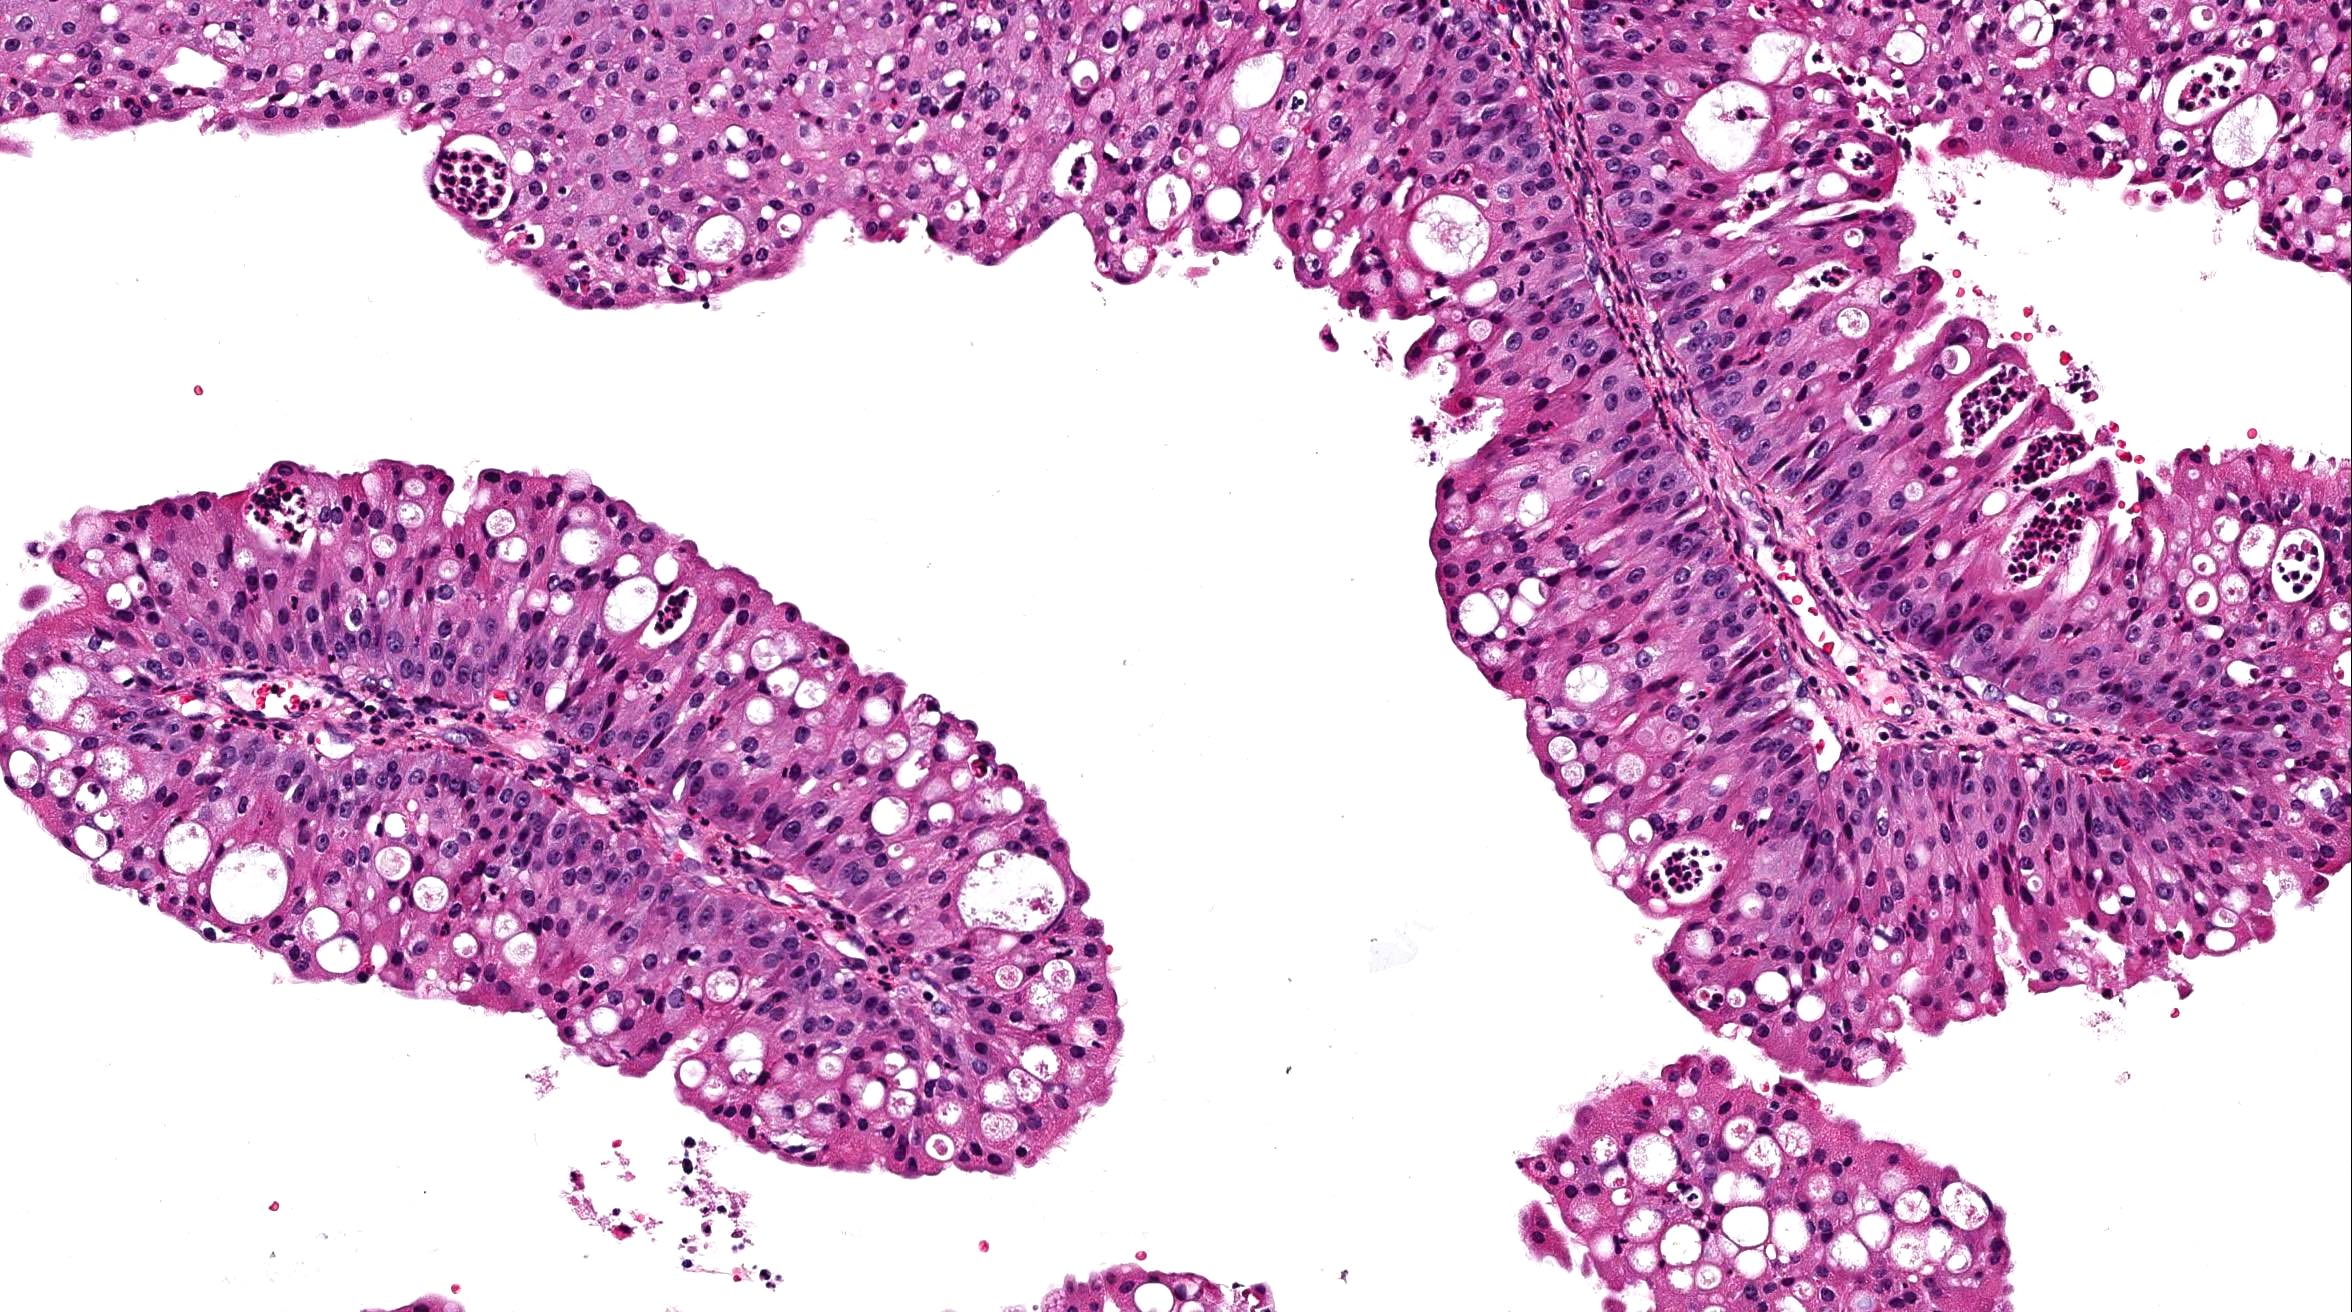 Inverted papilloma nasal pathology. RMR_Nr-2__Artpdf Nasal inverted papilloma histology